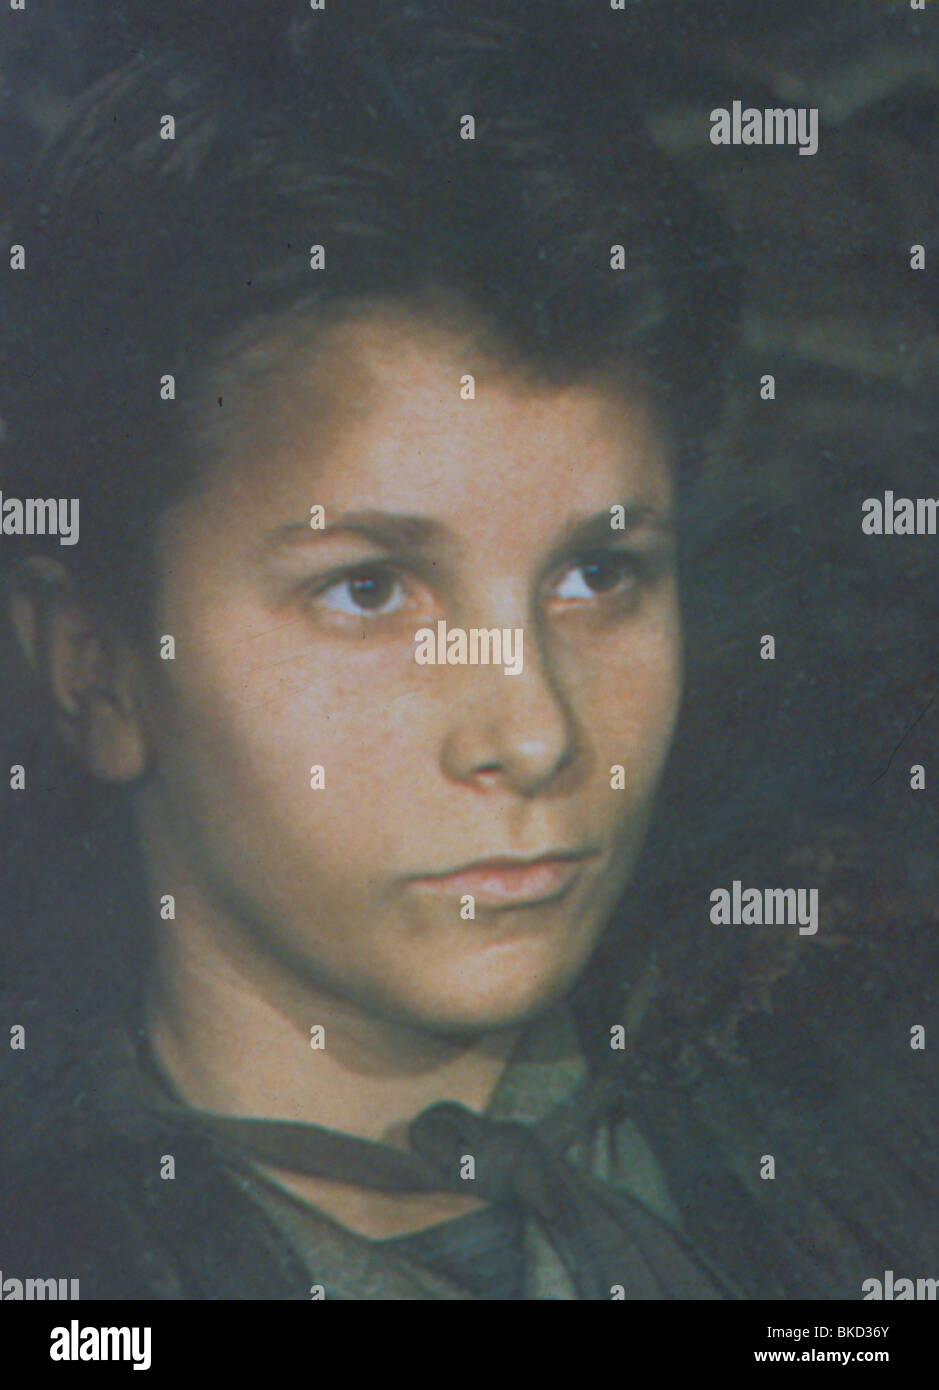 henry v 1989 christian bale stock photo 29176755 alamy